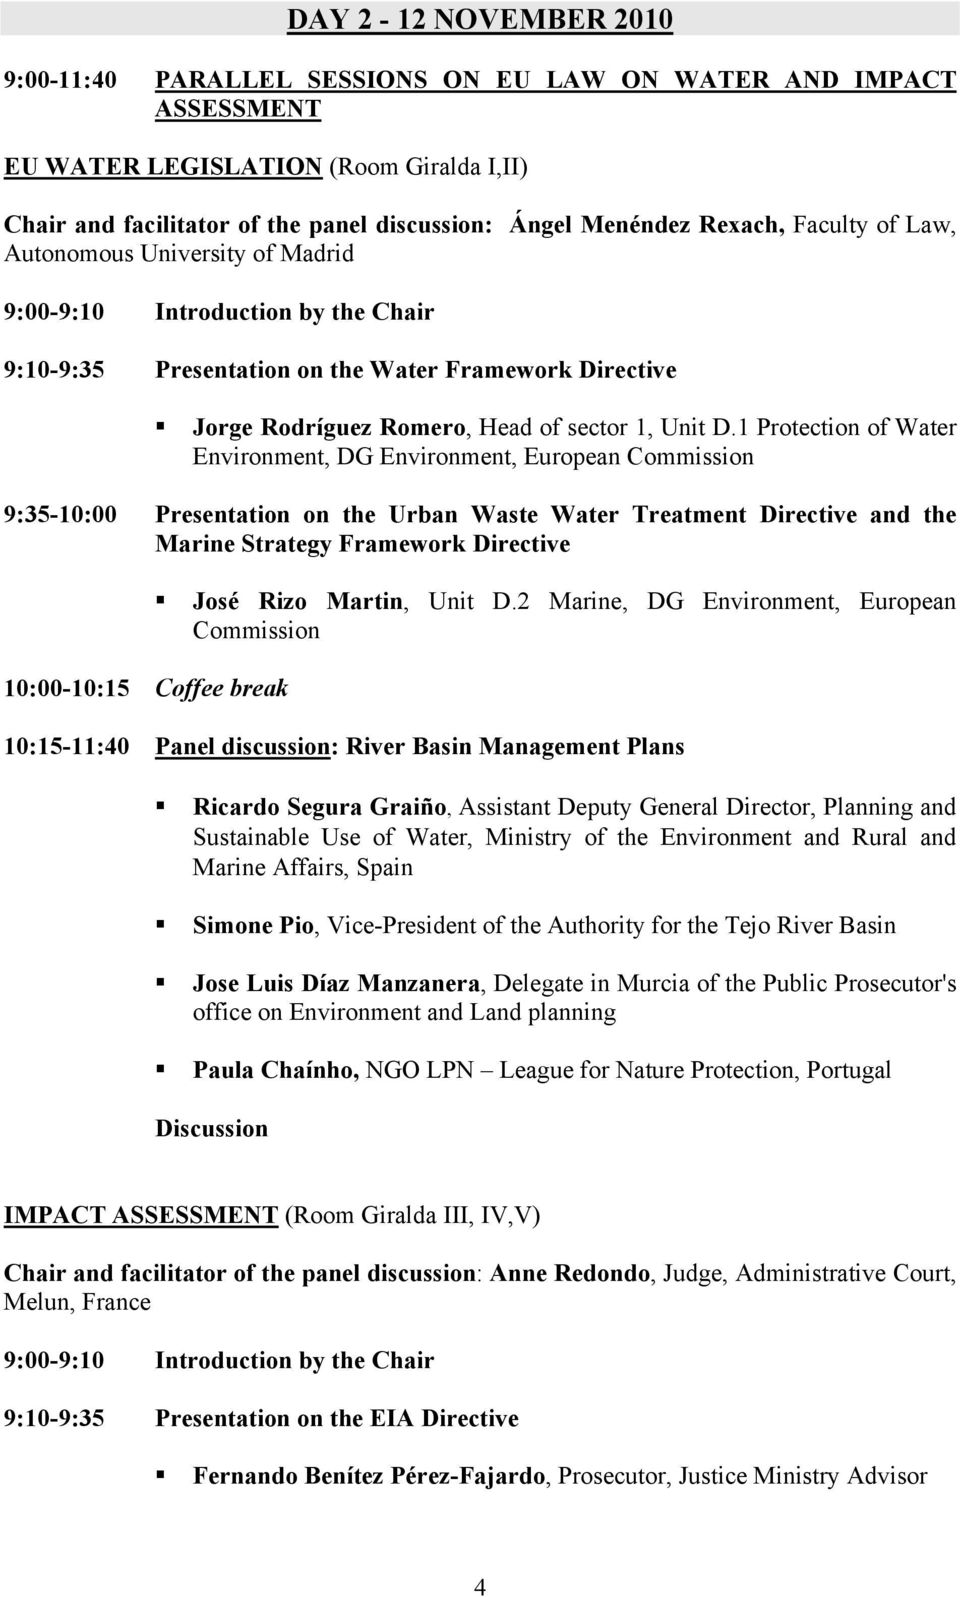 1 Protection of Water Environment, DG Environment, European Commission 9:35-10:00 Presentation on the Urban Waste Water Treatment Directive and the Marine Strategy Framework Directive 10:00-10:15